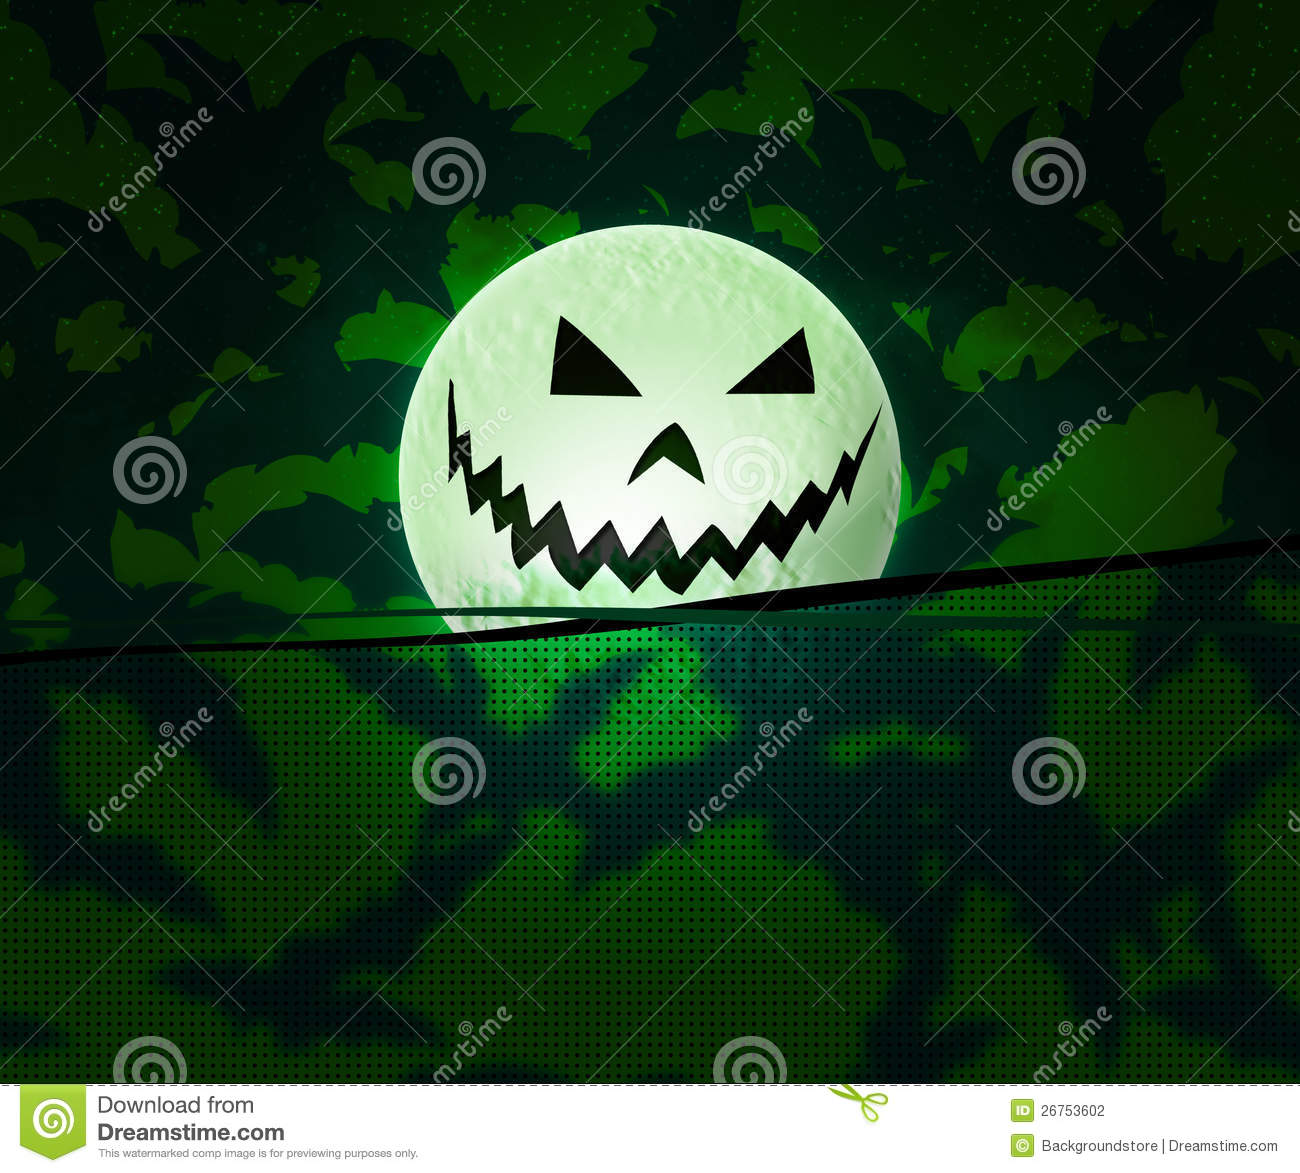 Colorful Fall Scene Wallpaper Green Halloween Background Stock Photography Image 26753602